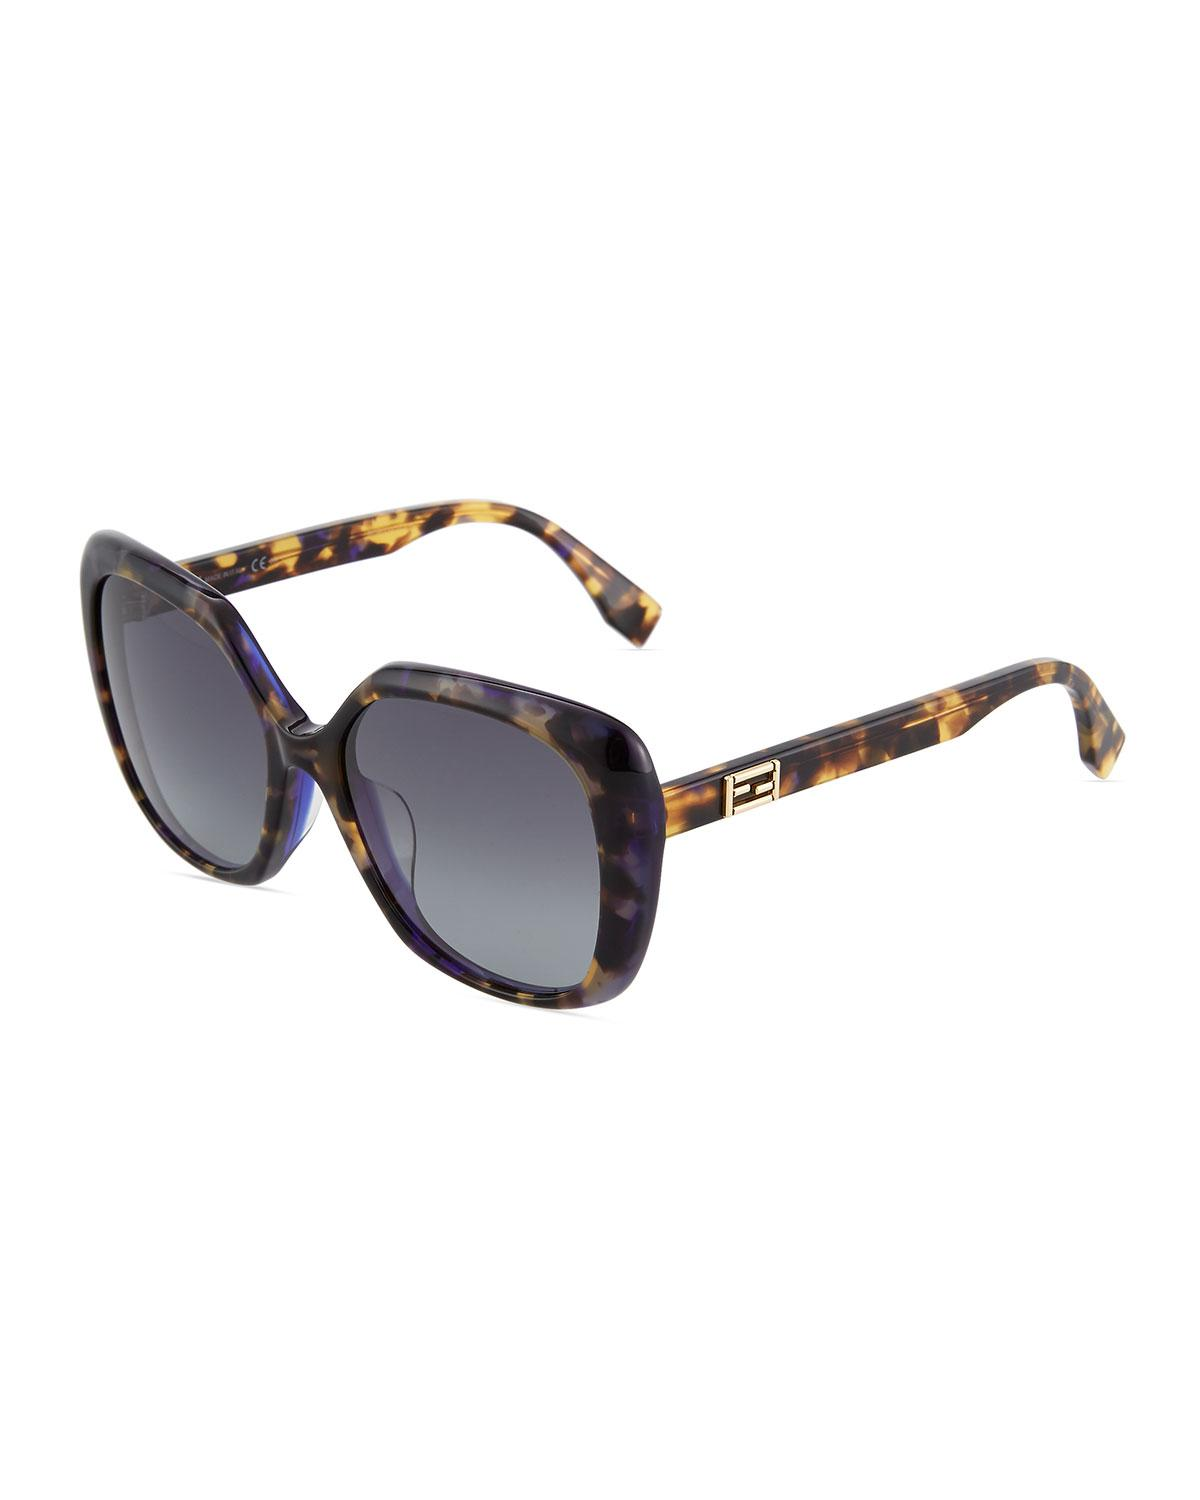 af95700a65 Lyst - Fendi Butterfly Plastic Sunglasses in Blue